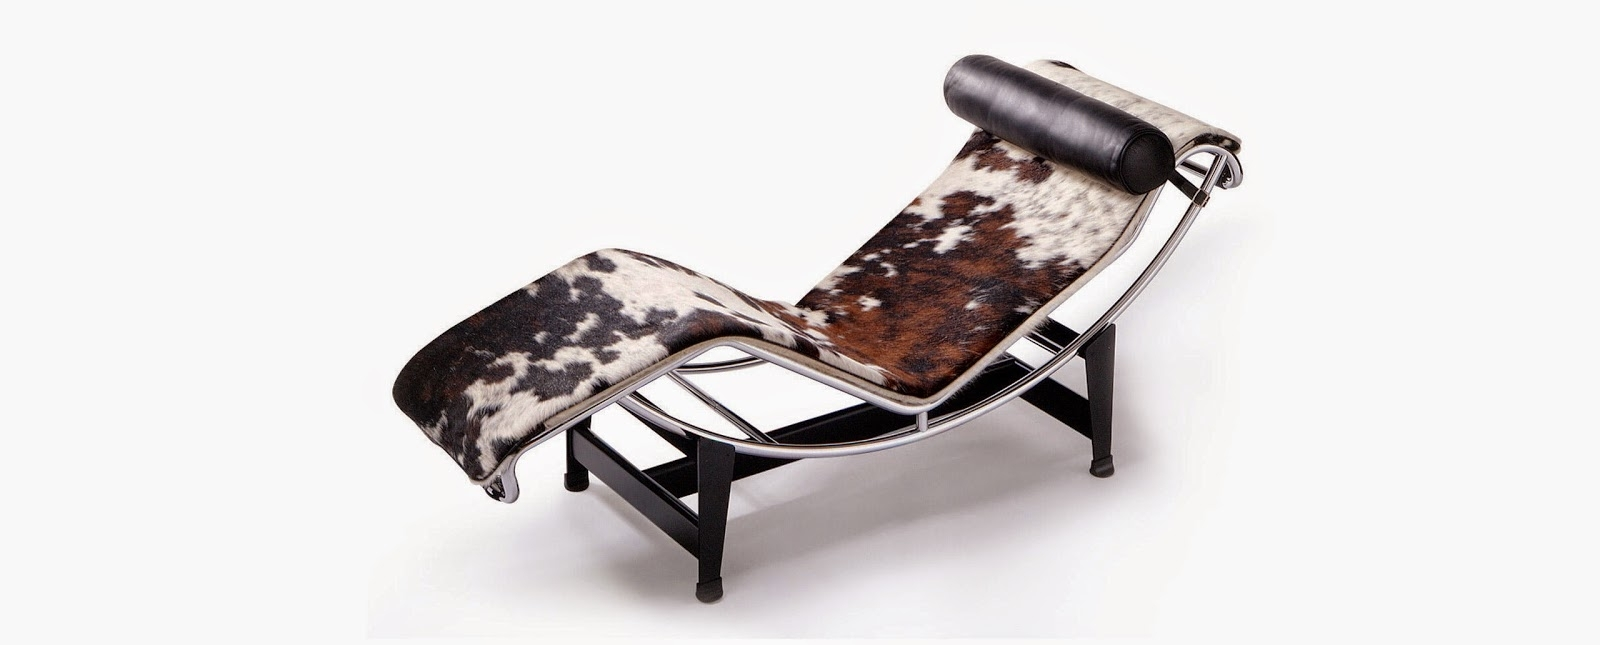 Nannasalmi Horsehair Jewelry: Le Corbusier Lc4 Chaise Lounge With Regard To Well Liked Corbusier Chaises (View 10 of 15)